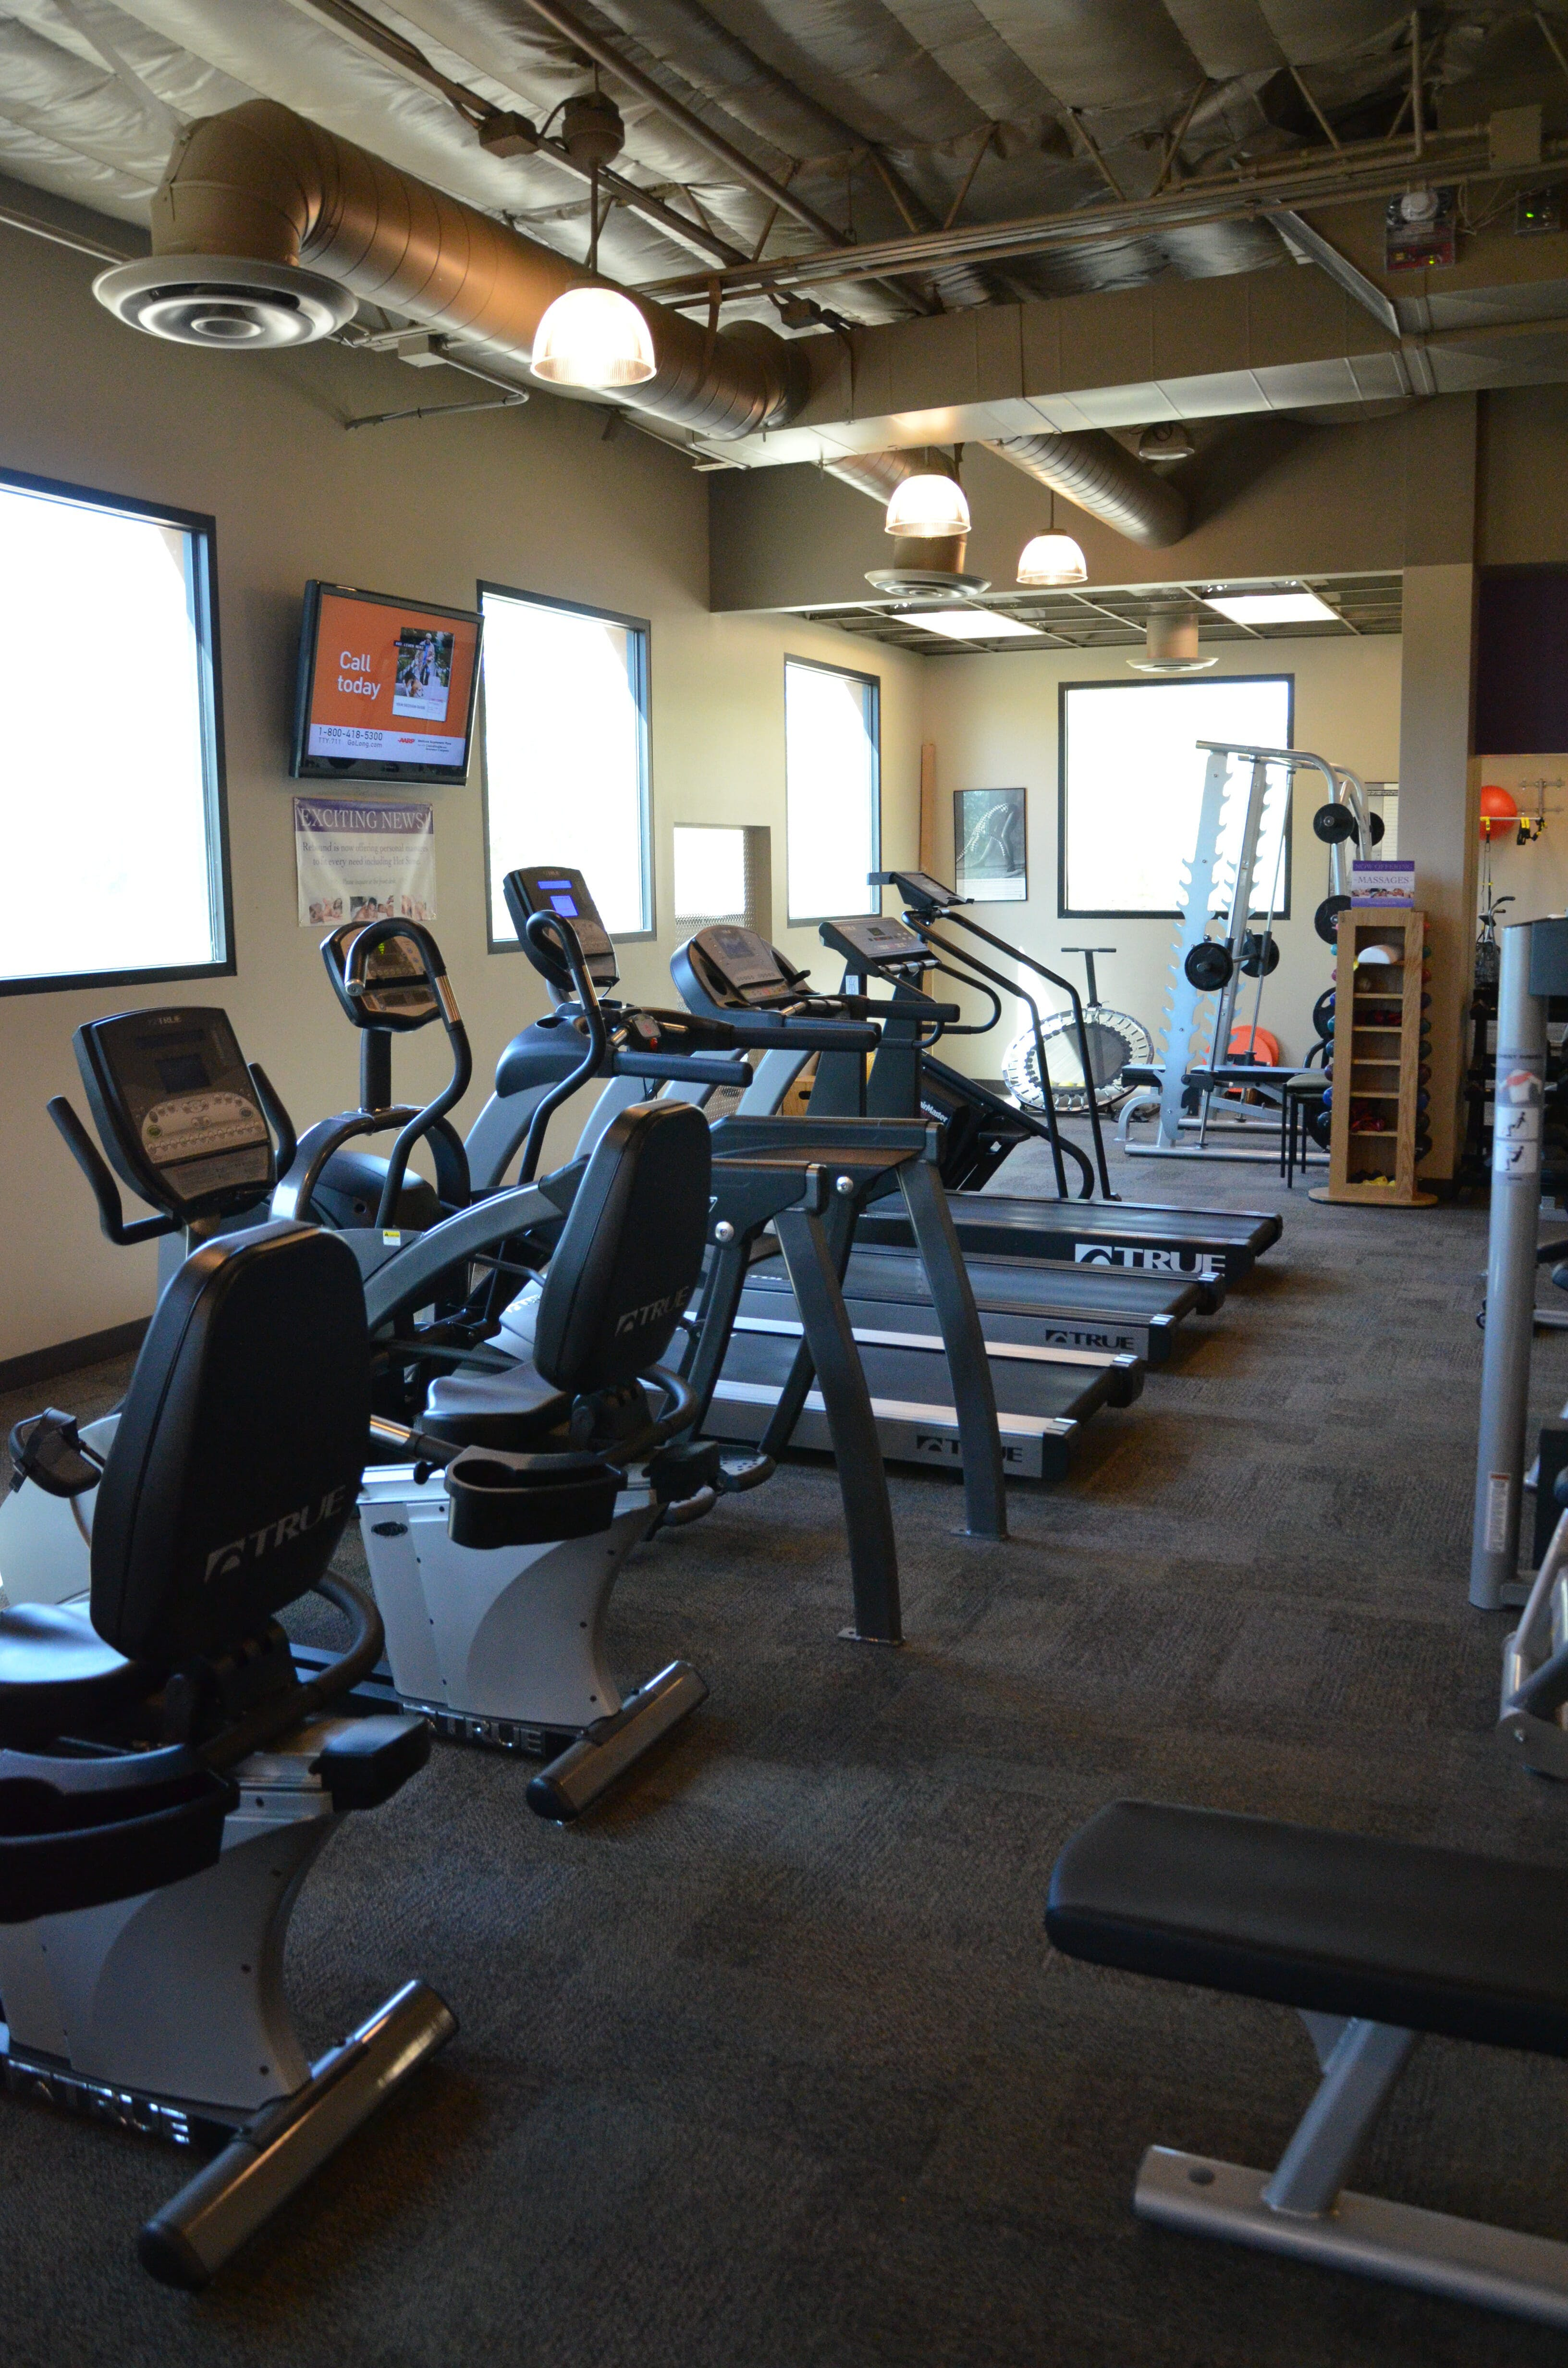 Arizona physical therapy equipment - Scottsdale Az 85255 Phone 480 502 4324 Fax 480 502 1397 Email Office Reboundpt Com